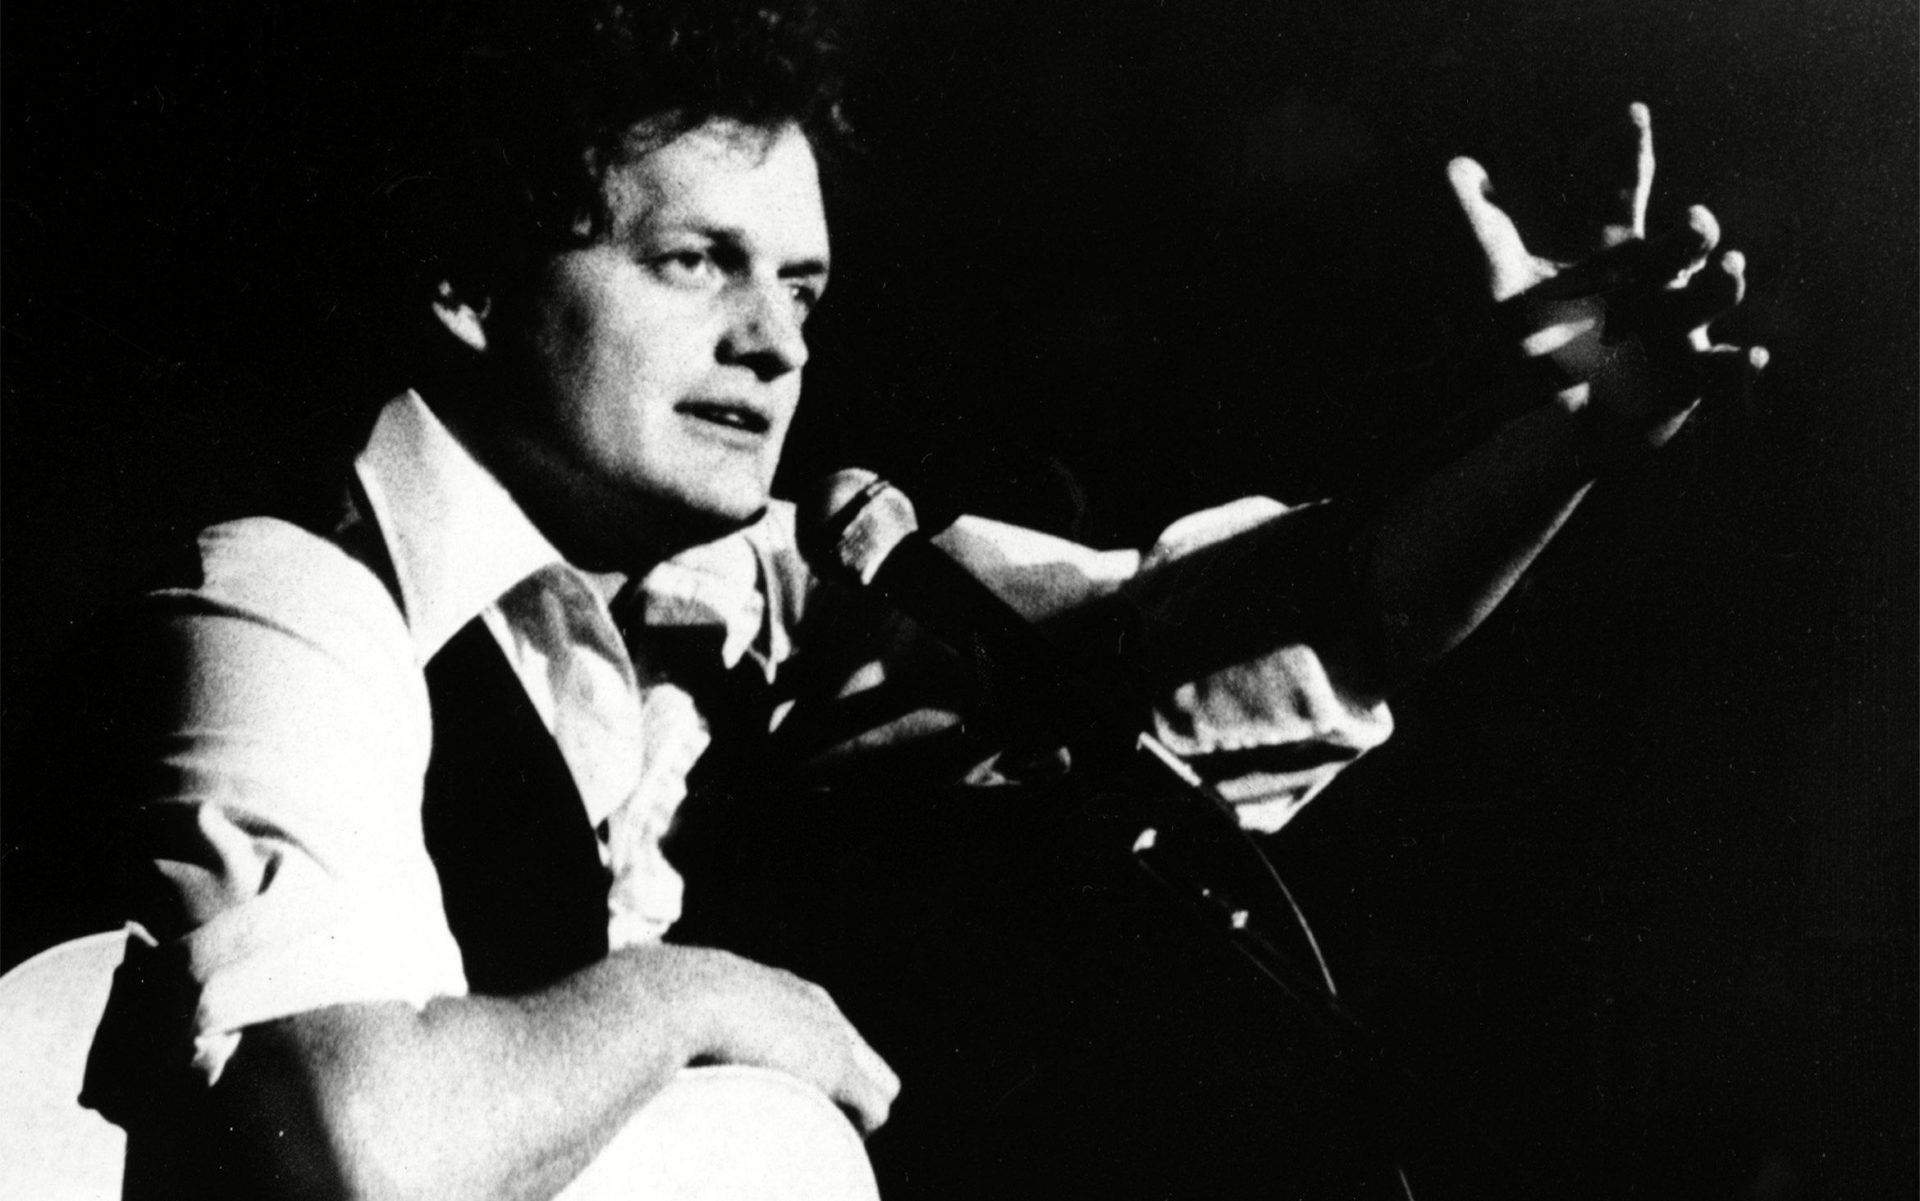 HARRY CHAPIN: WHEN IN DOUBT DO SOMETHING